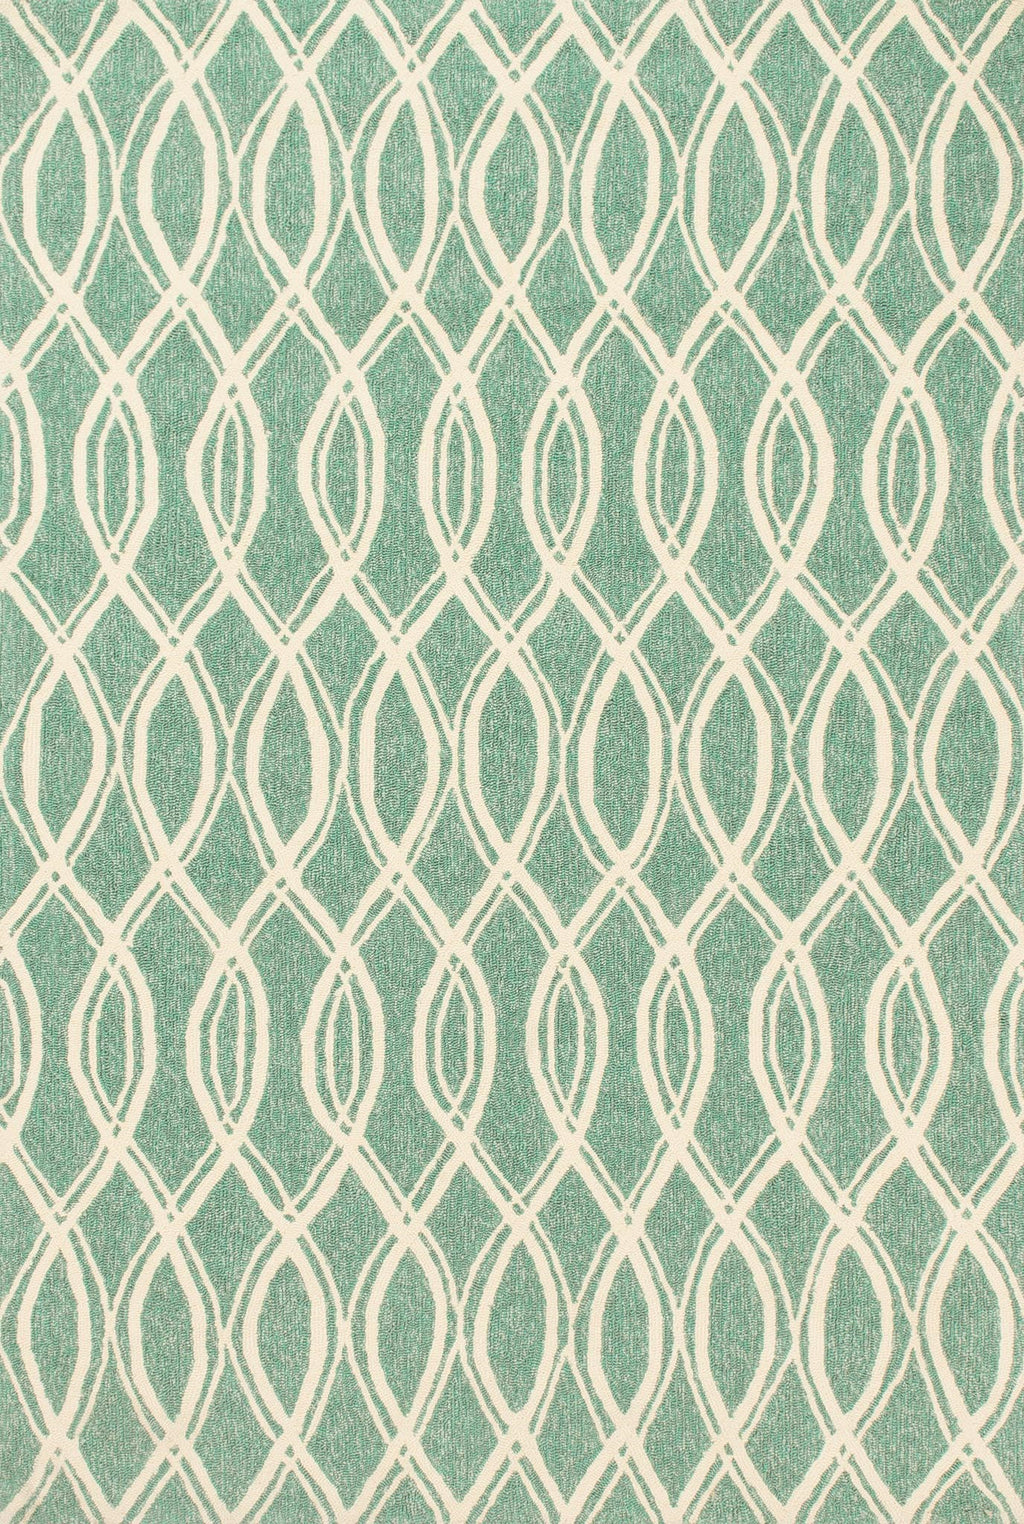 VENICE BEACH Collection Rug  in  TURQUOISE / IVORY Blue Small Hand-Hooked Polypropylene